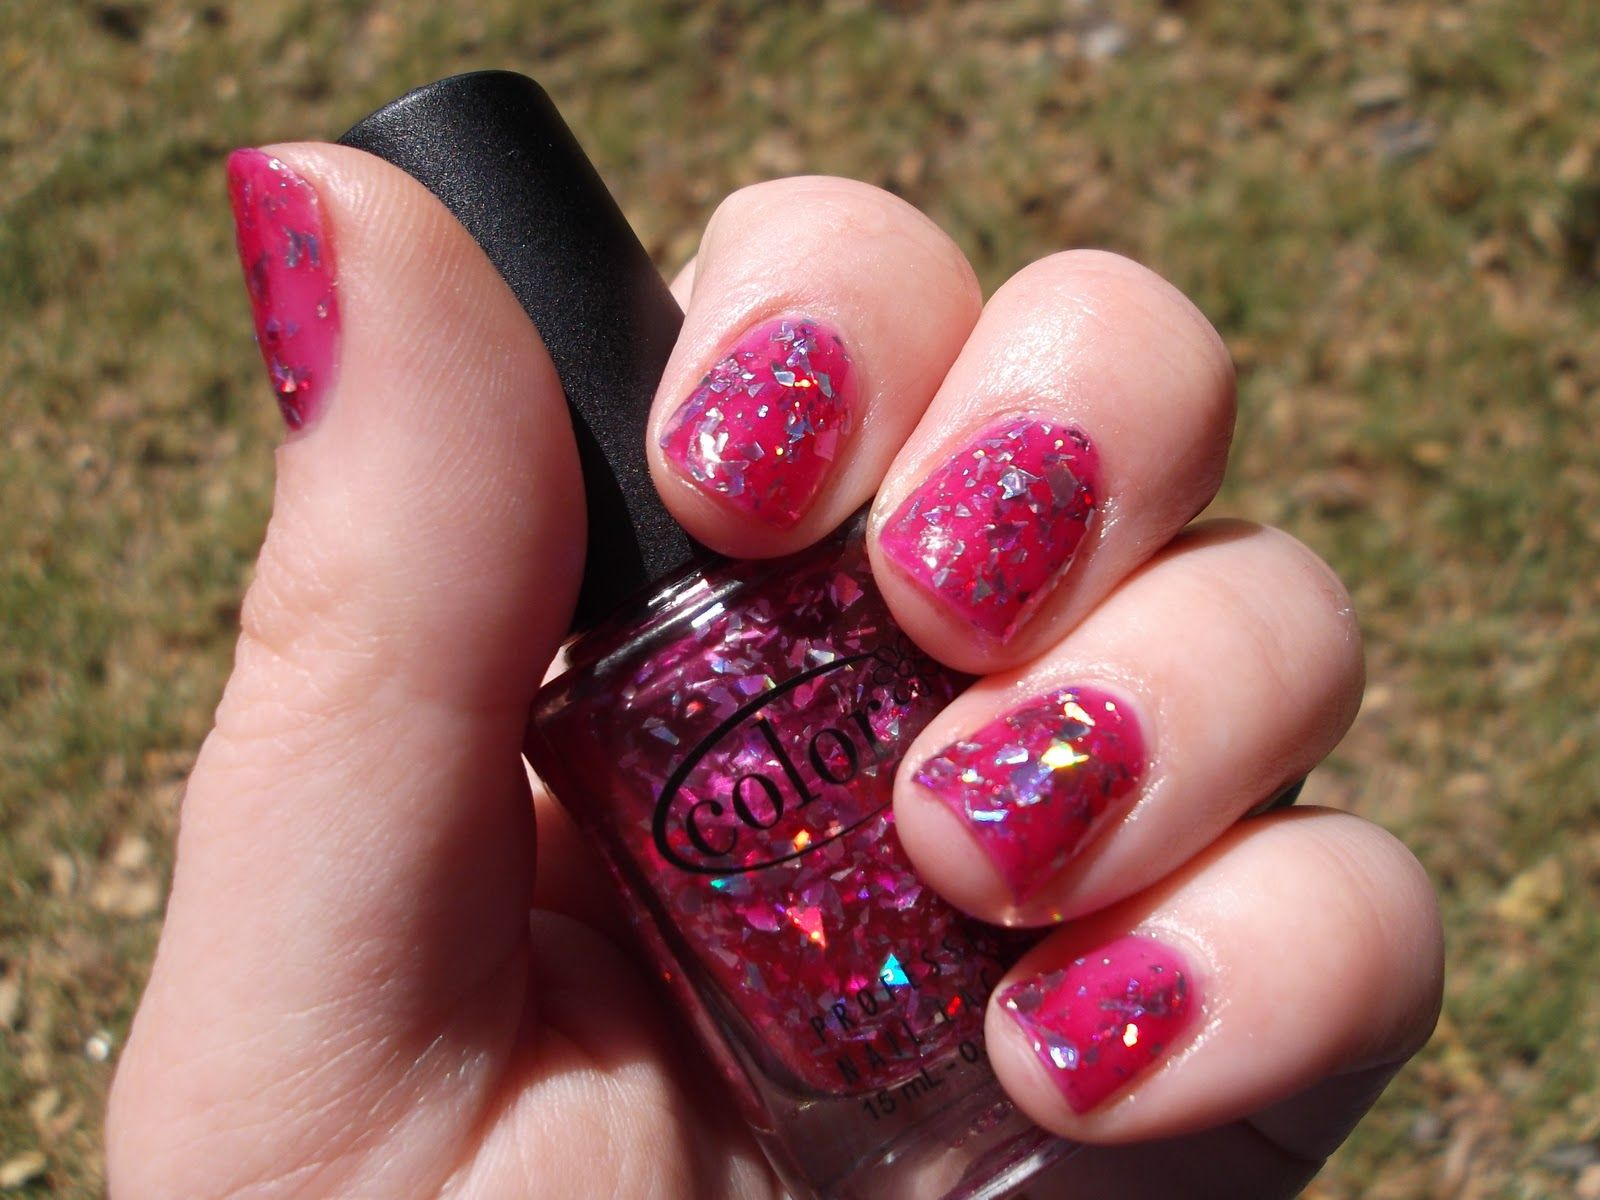 My manicure today (Fame and Fortune by Color Club). My inner 12 year old is pleased by my choices as an adult.